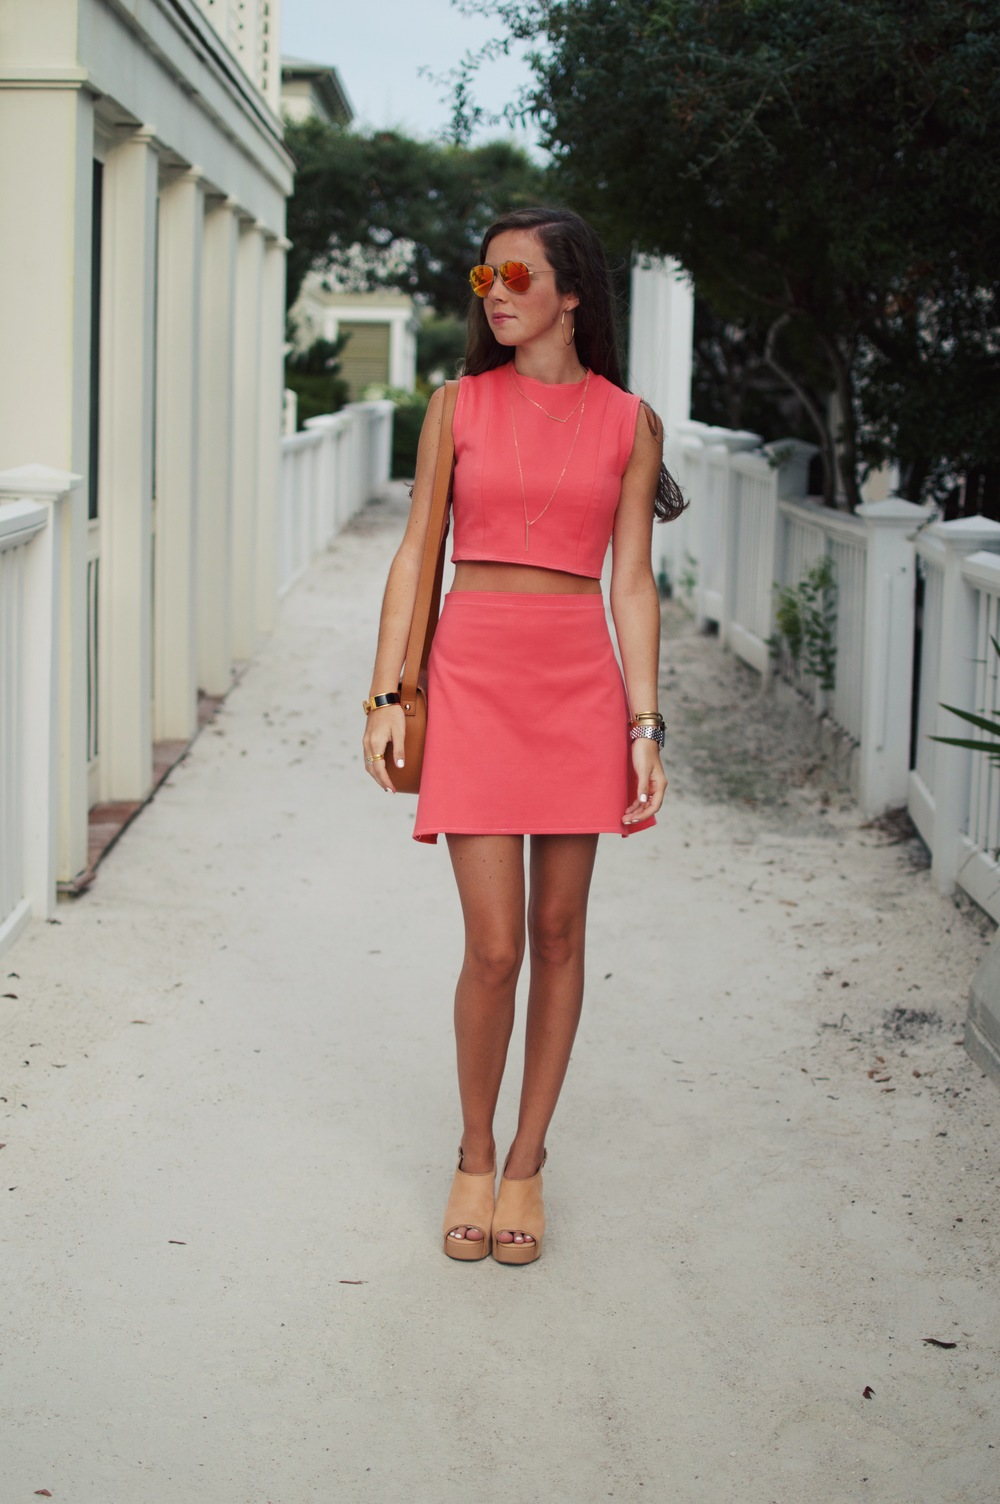 designs by lcb coral two piece13.JPG